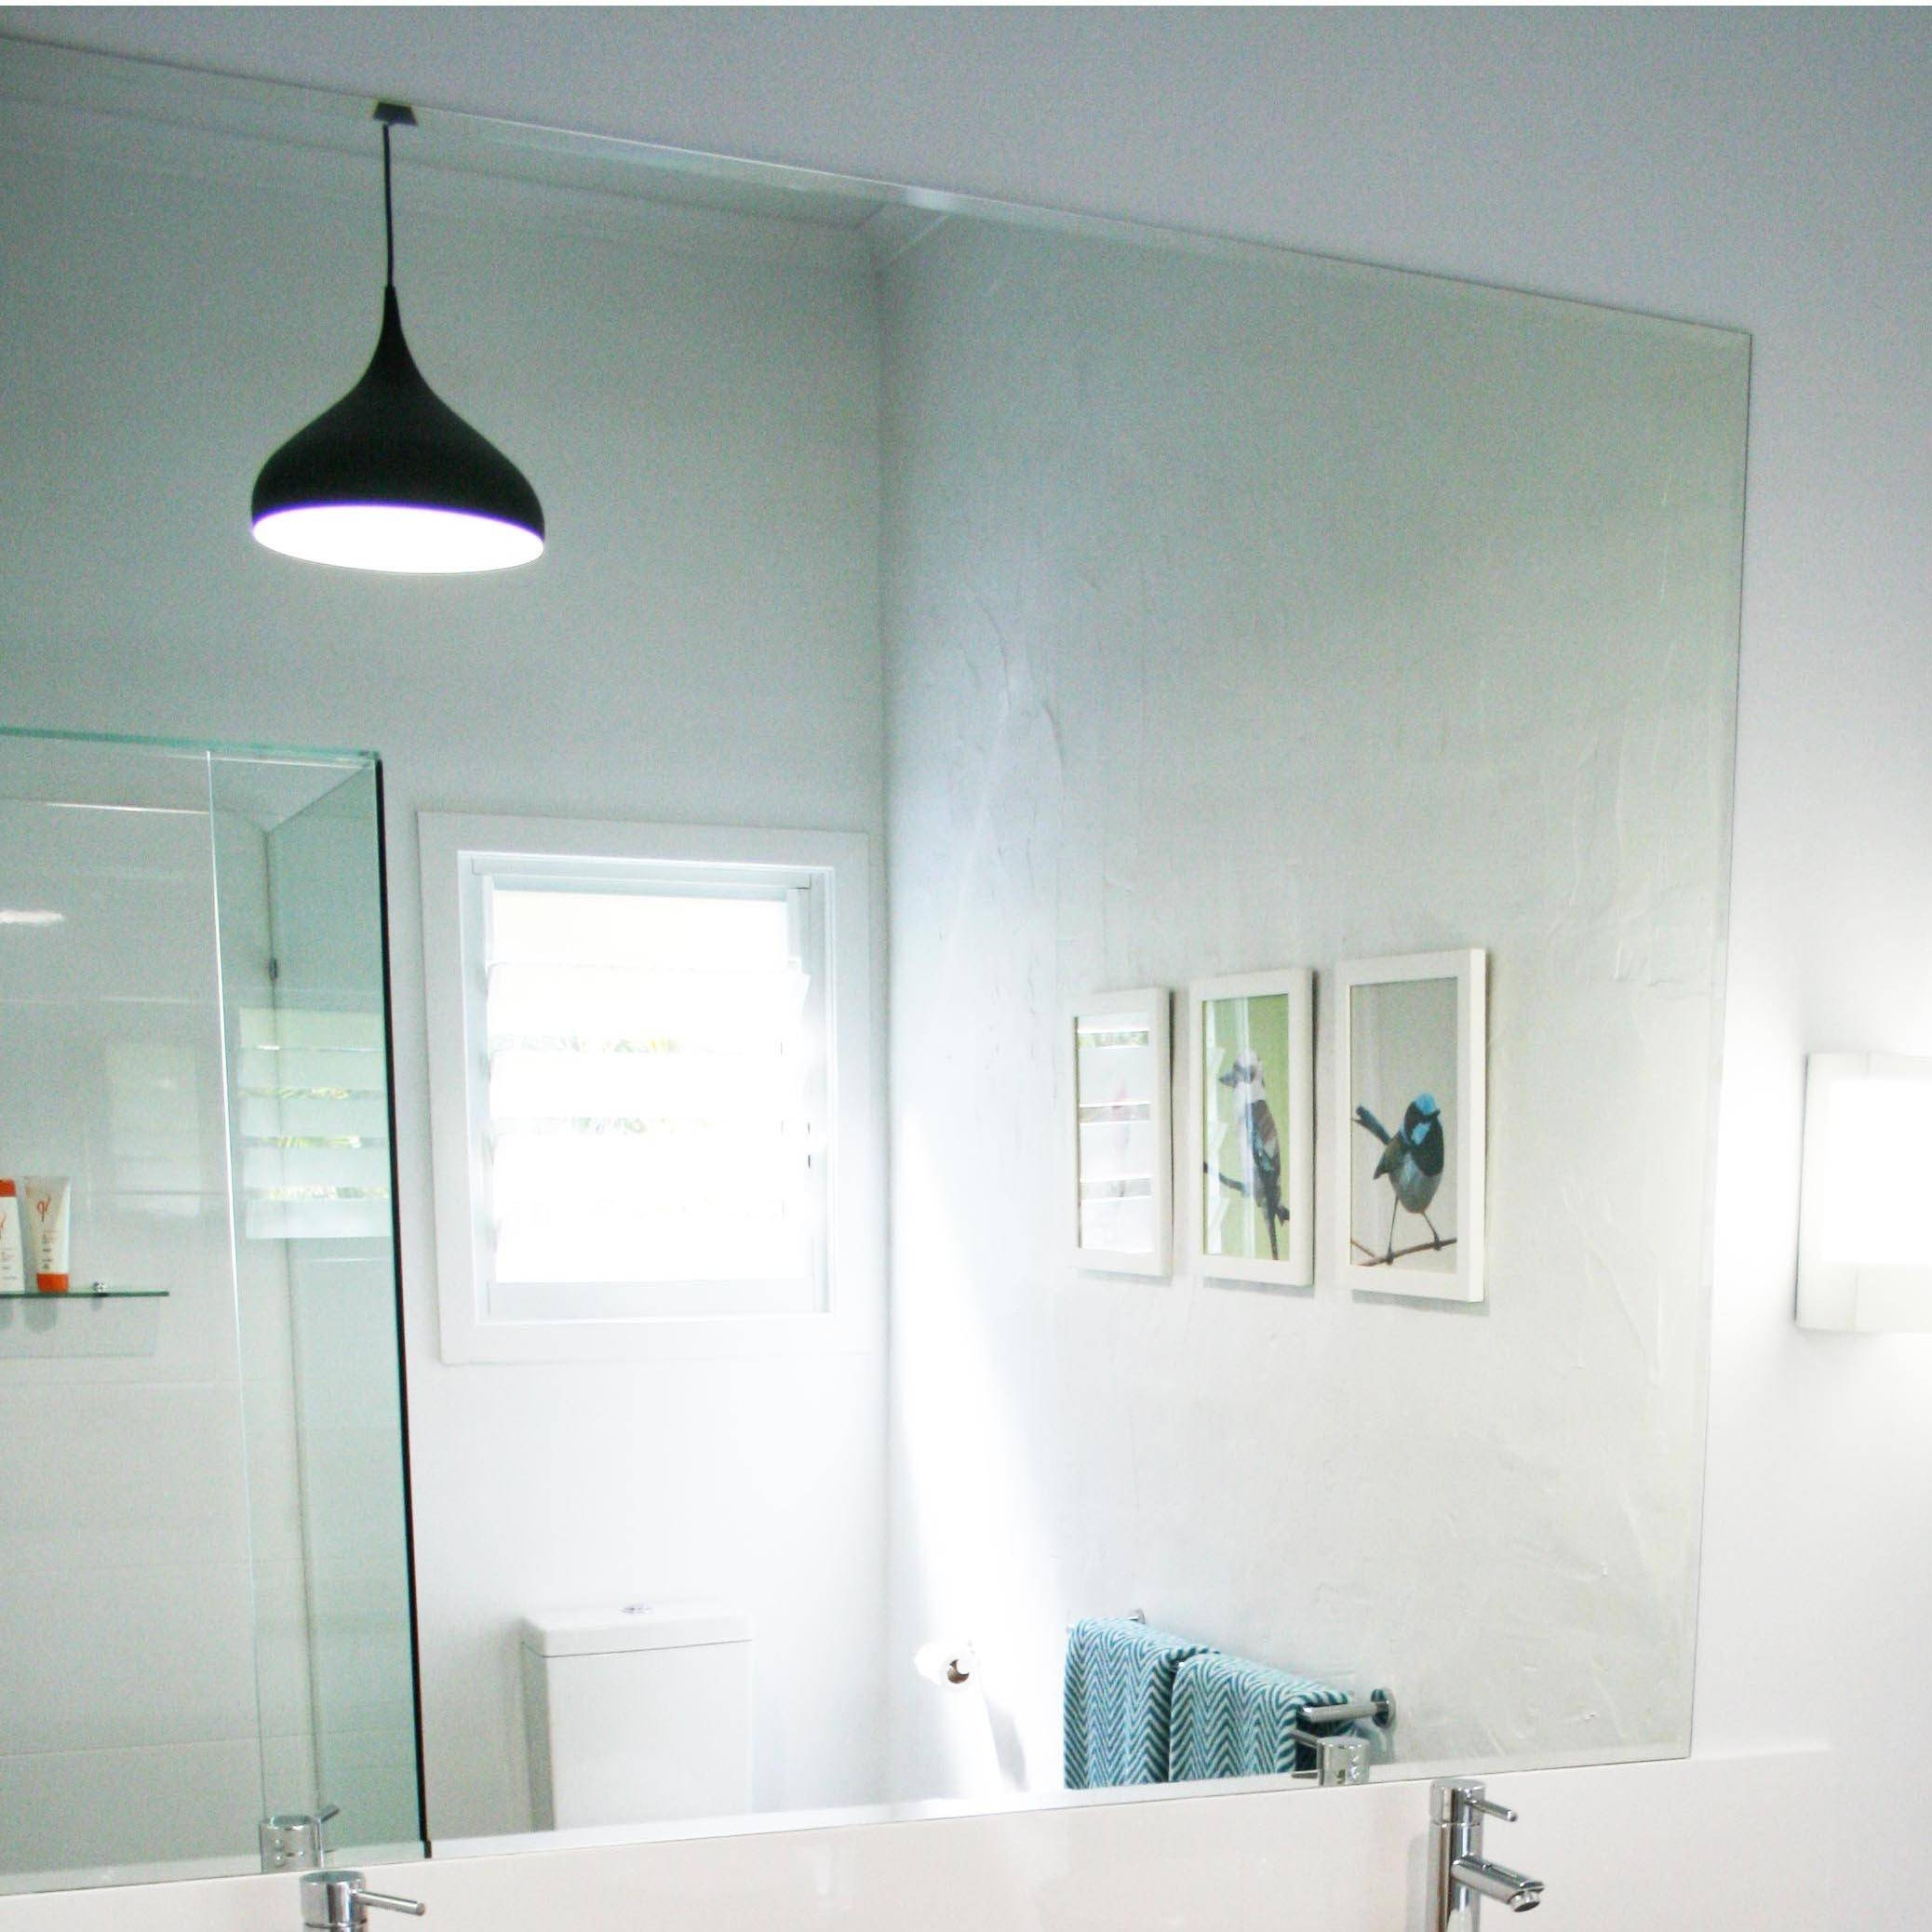 Reflekta Bevelled Edge Mirror 1800X900Mm | Highgrove Bathrooms with regard to High Grove Mirrors (Image 15 of 15)